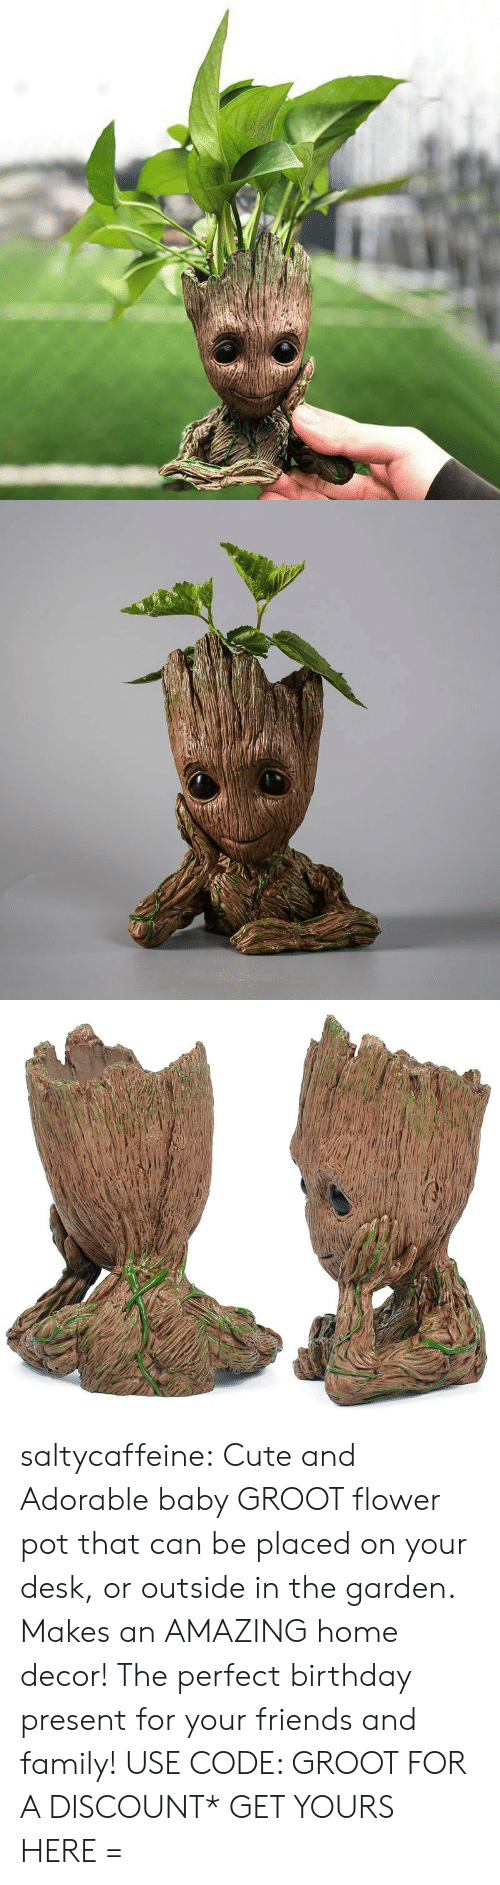 Birthday, Cute, and Family: saltycaffeine:  Cute and Adorable baby GROOT flower pot that can be placed on your desk, or outside in the garden. Makes an AMAZING home decor! The perfect birthday present for your friends and family! USE CODE: GROOT FOR A DISCOUNT* GET YOURS HERE=